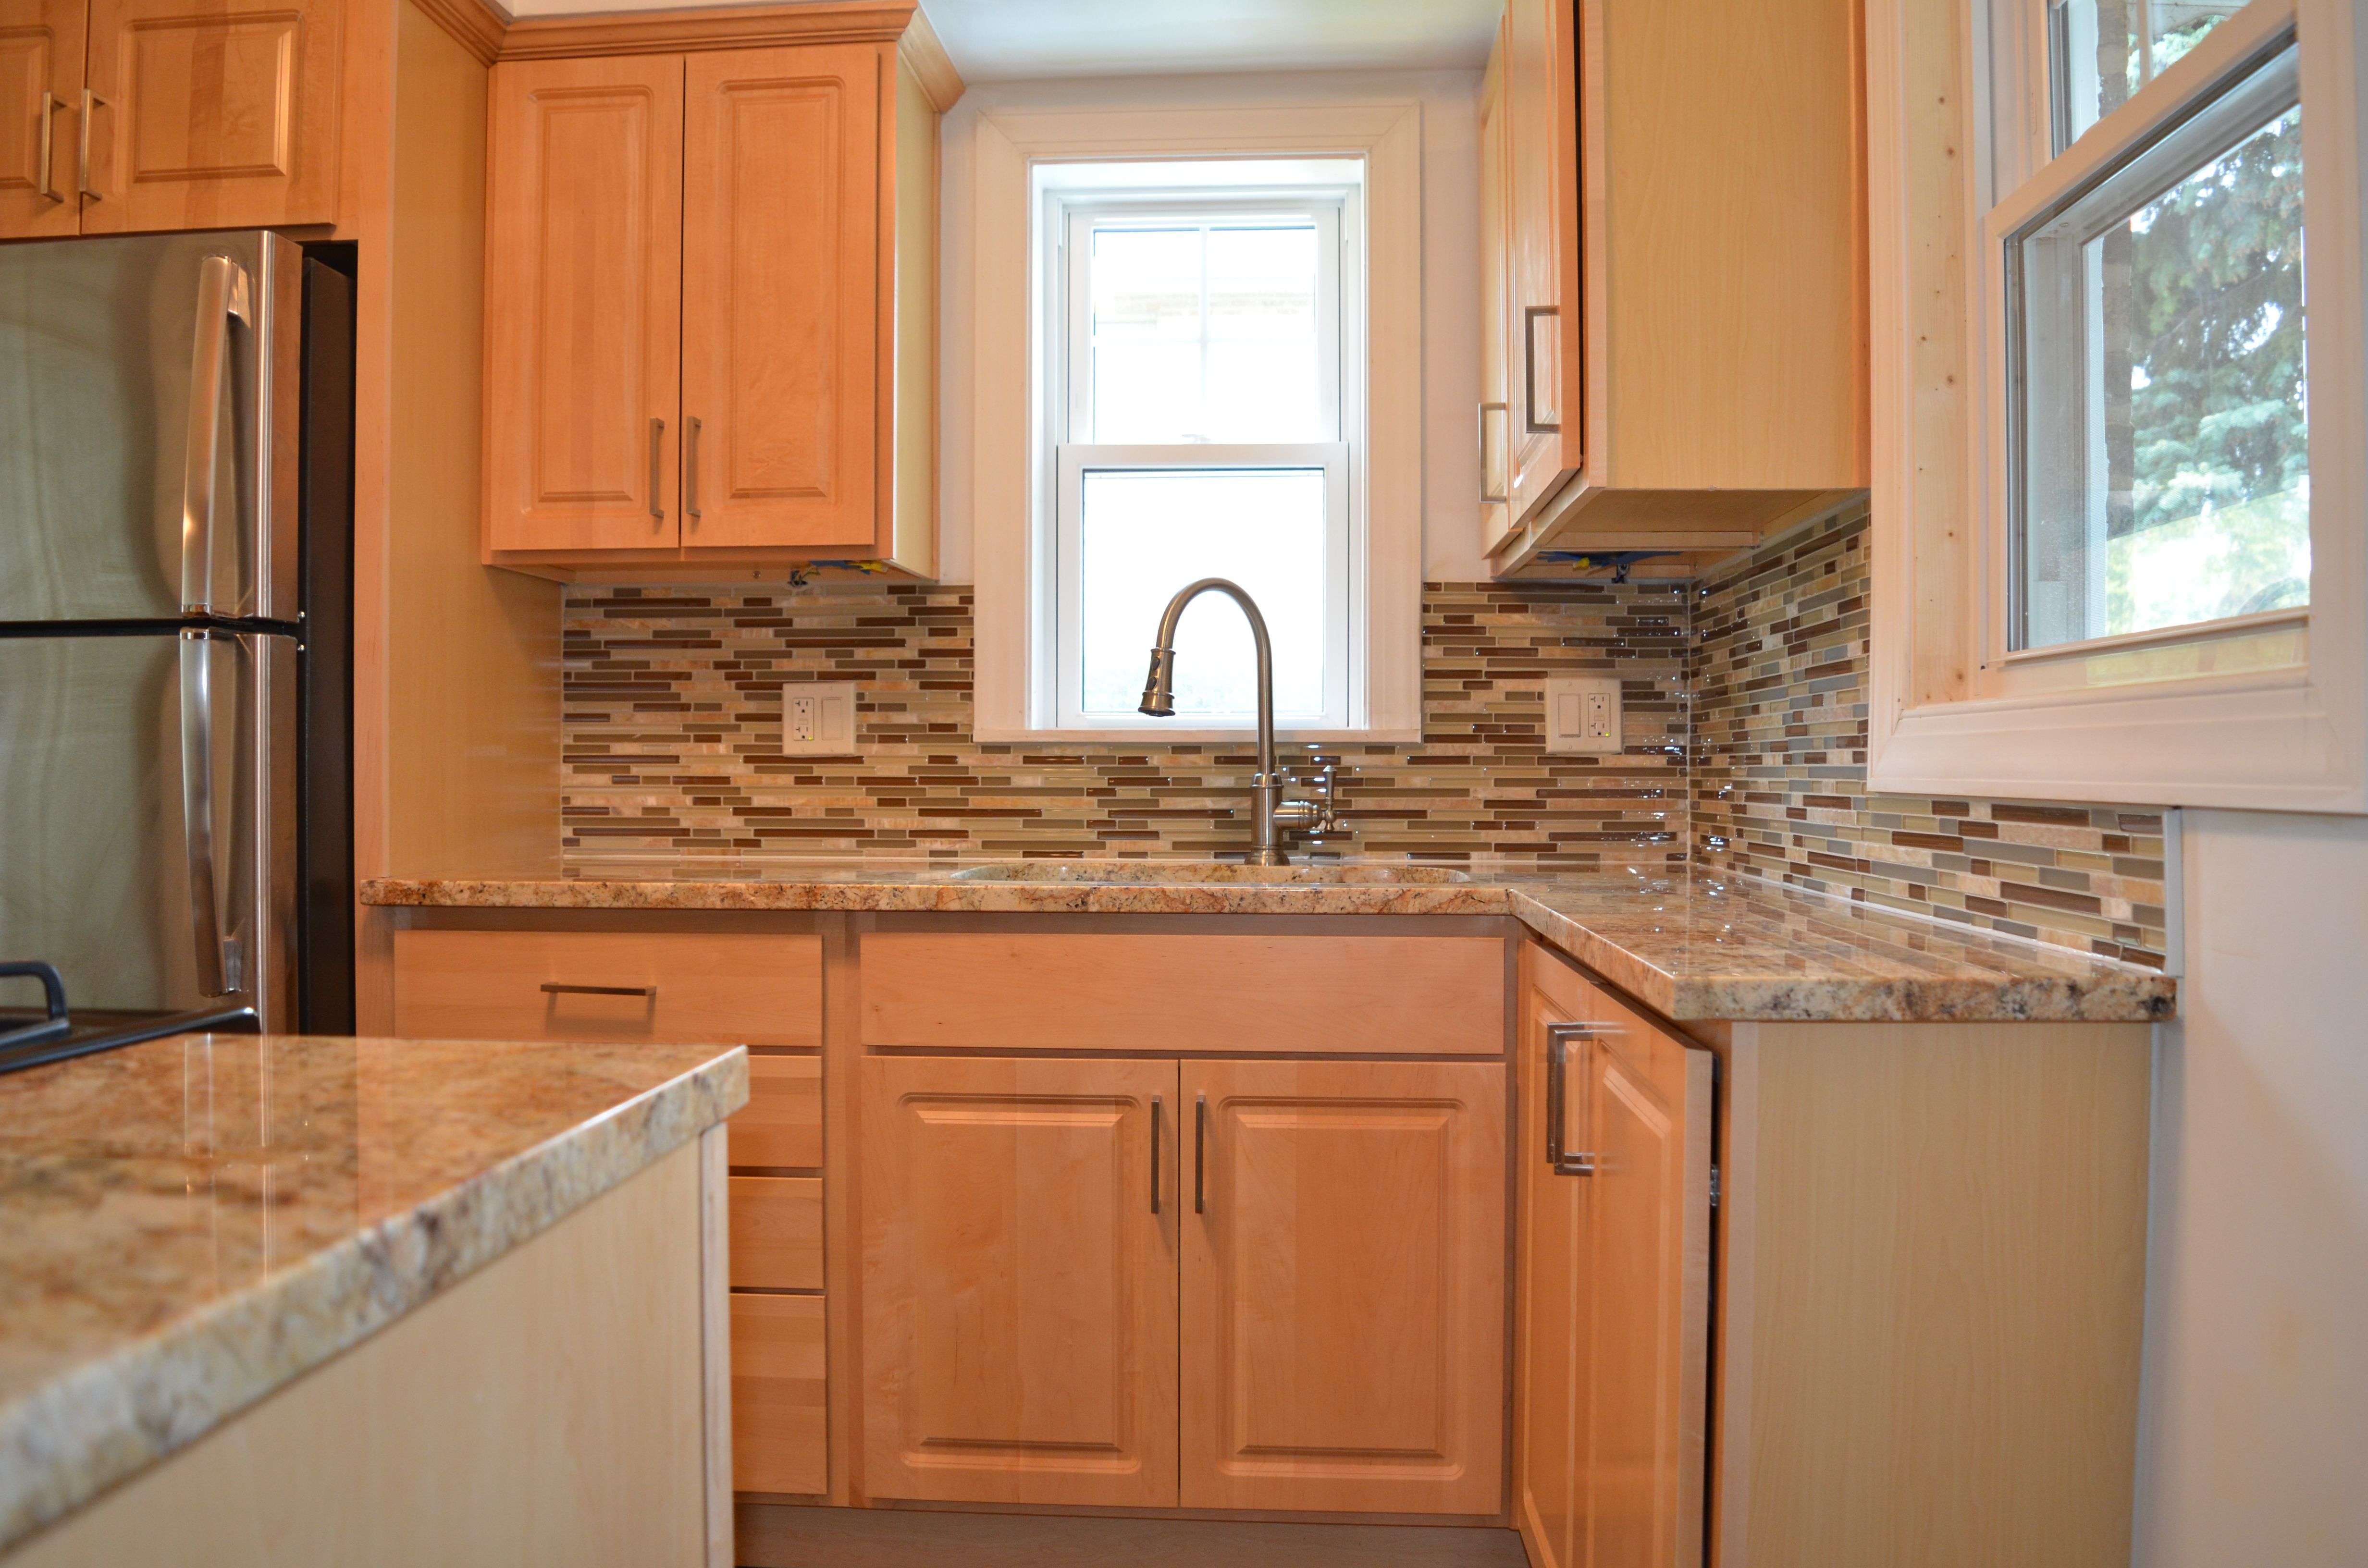 Kitchen remodel with natural maple cabinets, granite